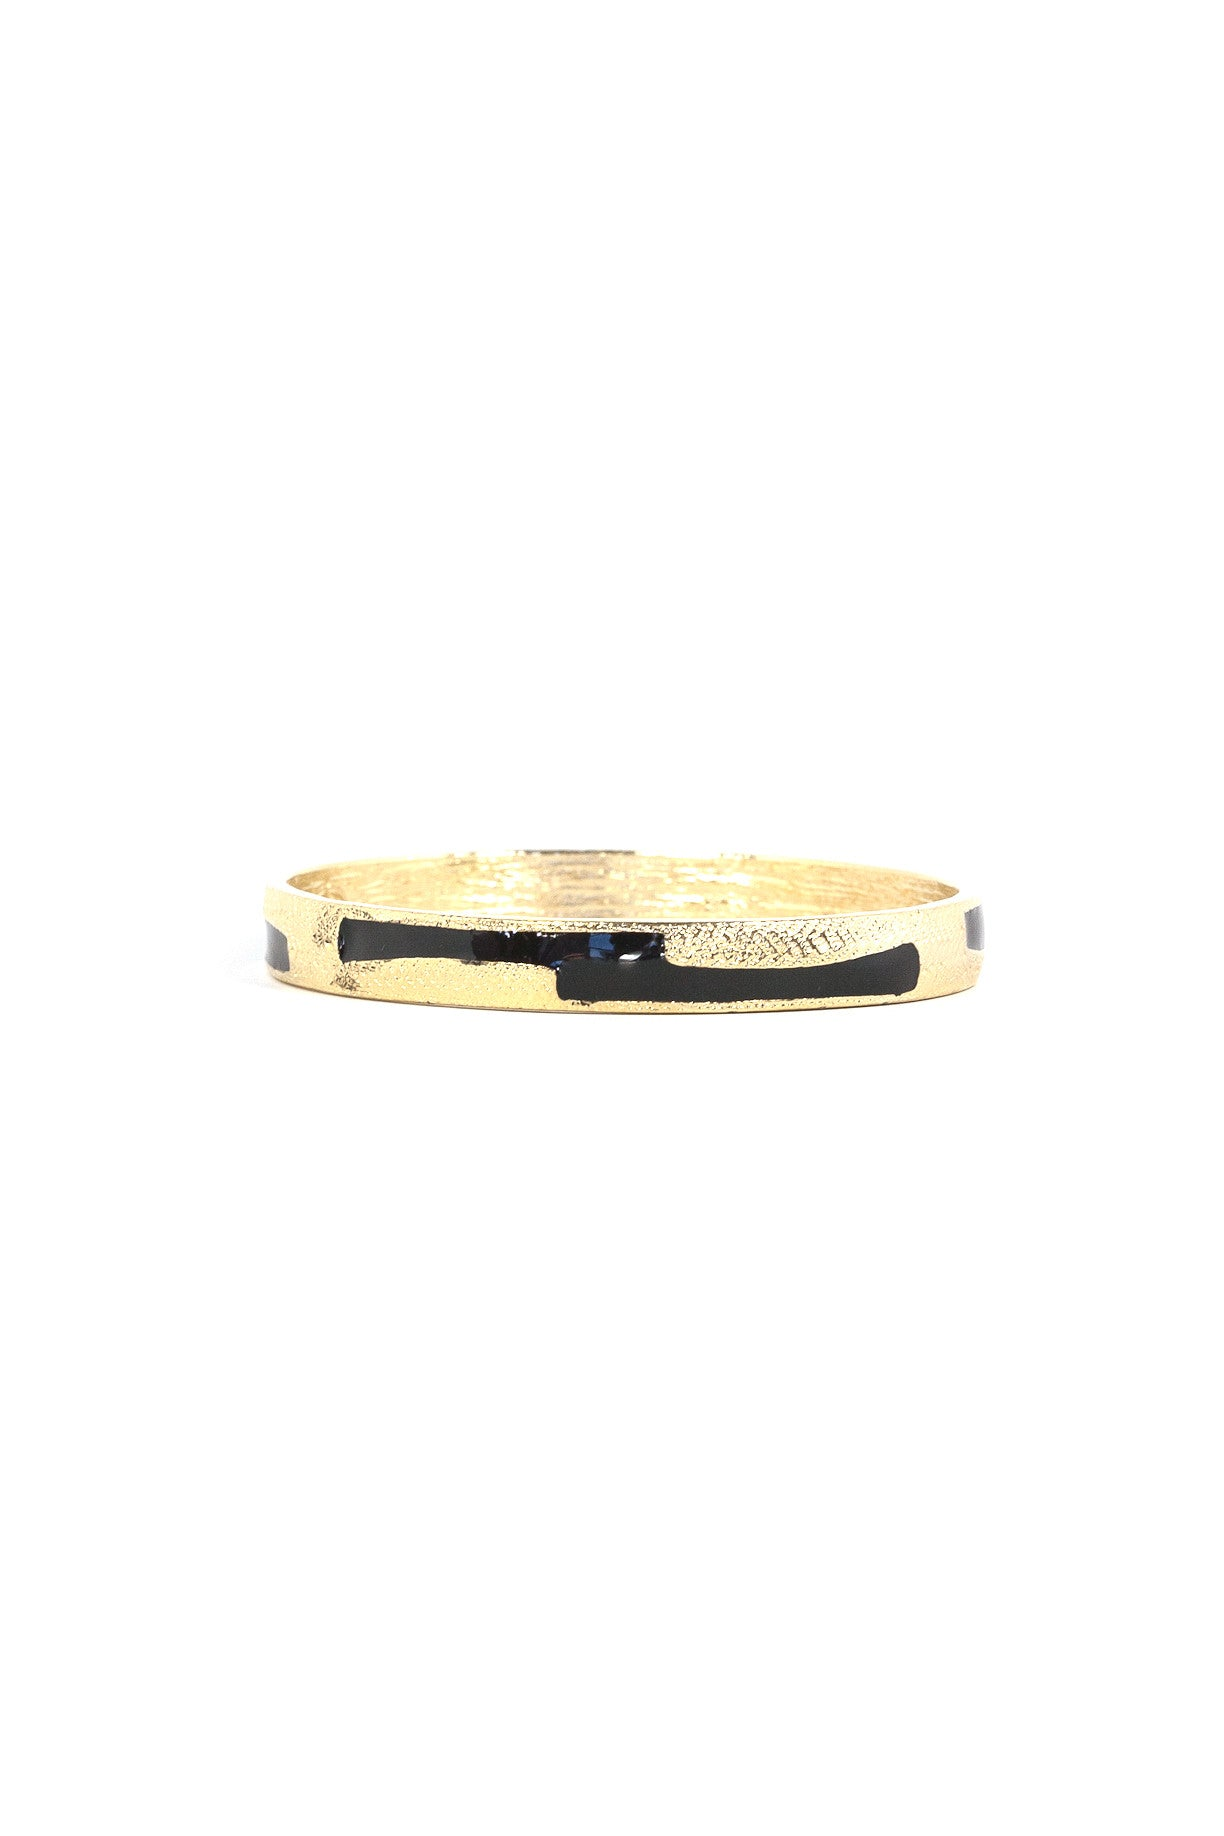 70's__Trifari__Black & Gold Enamel Bangle